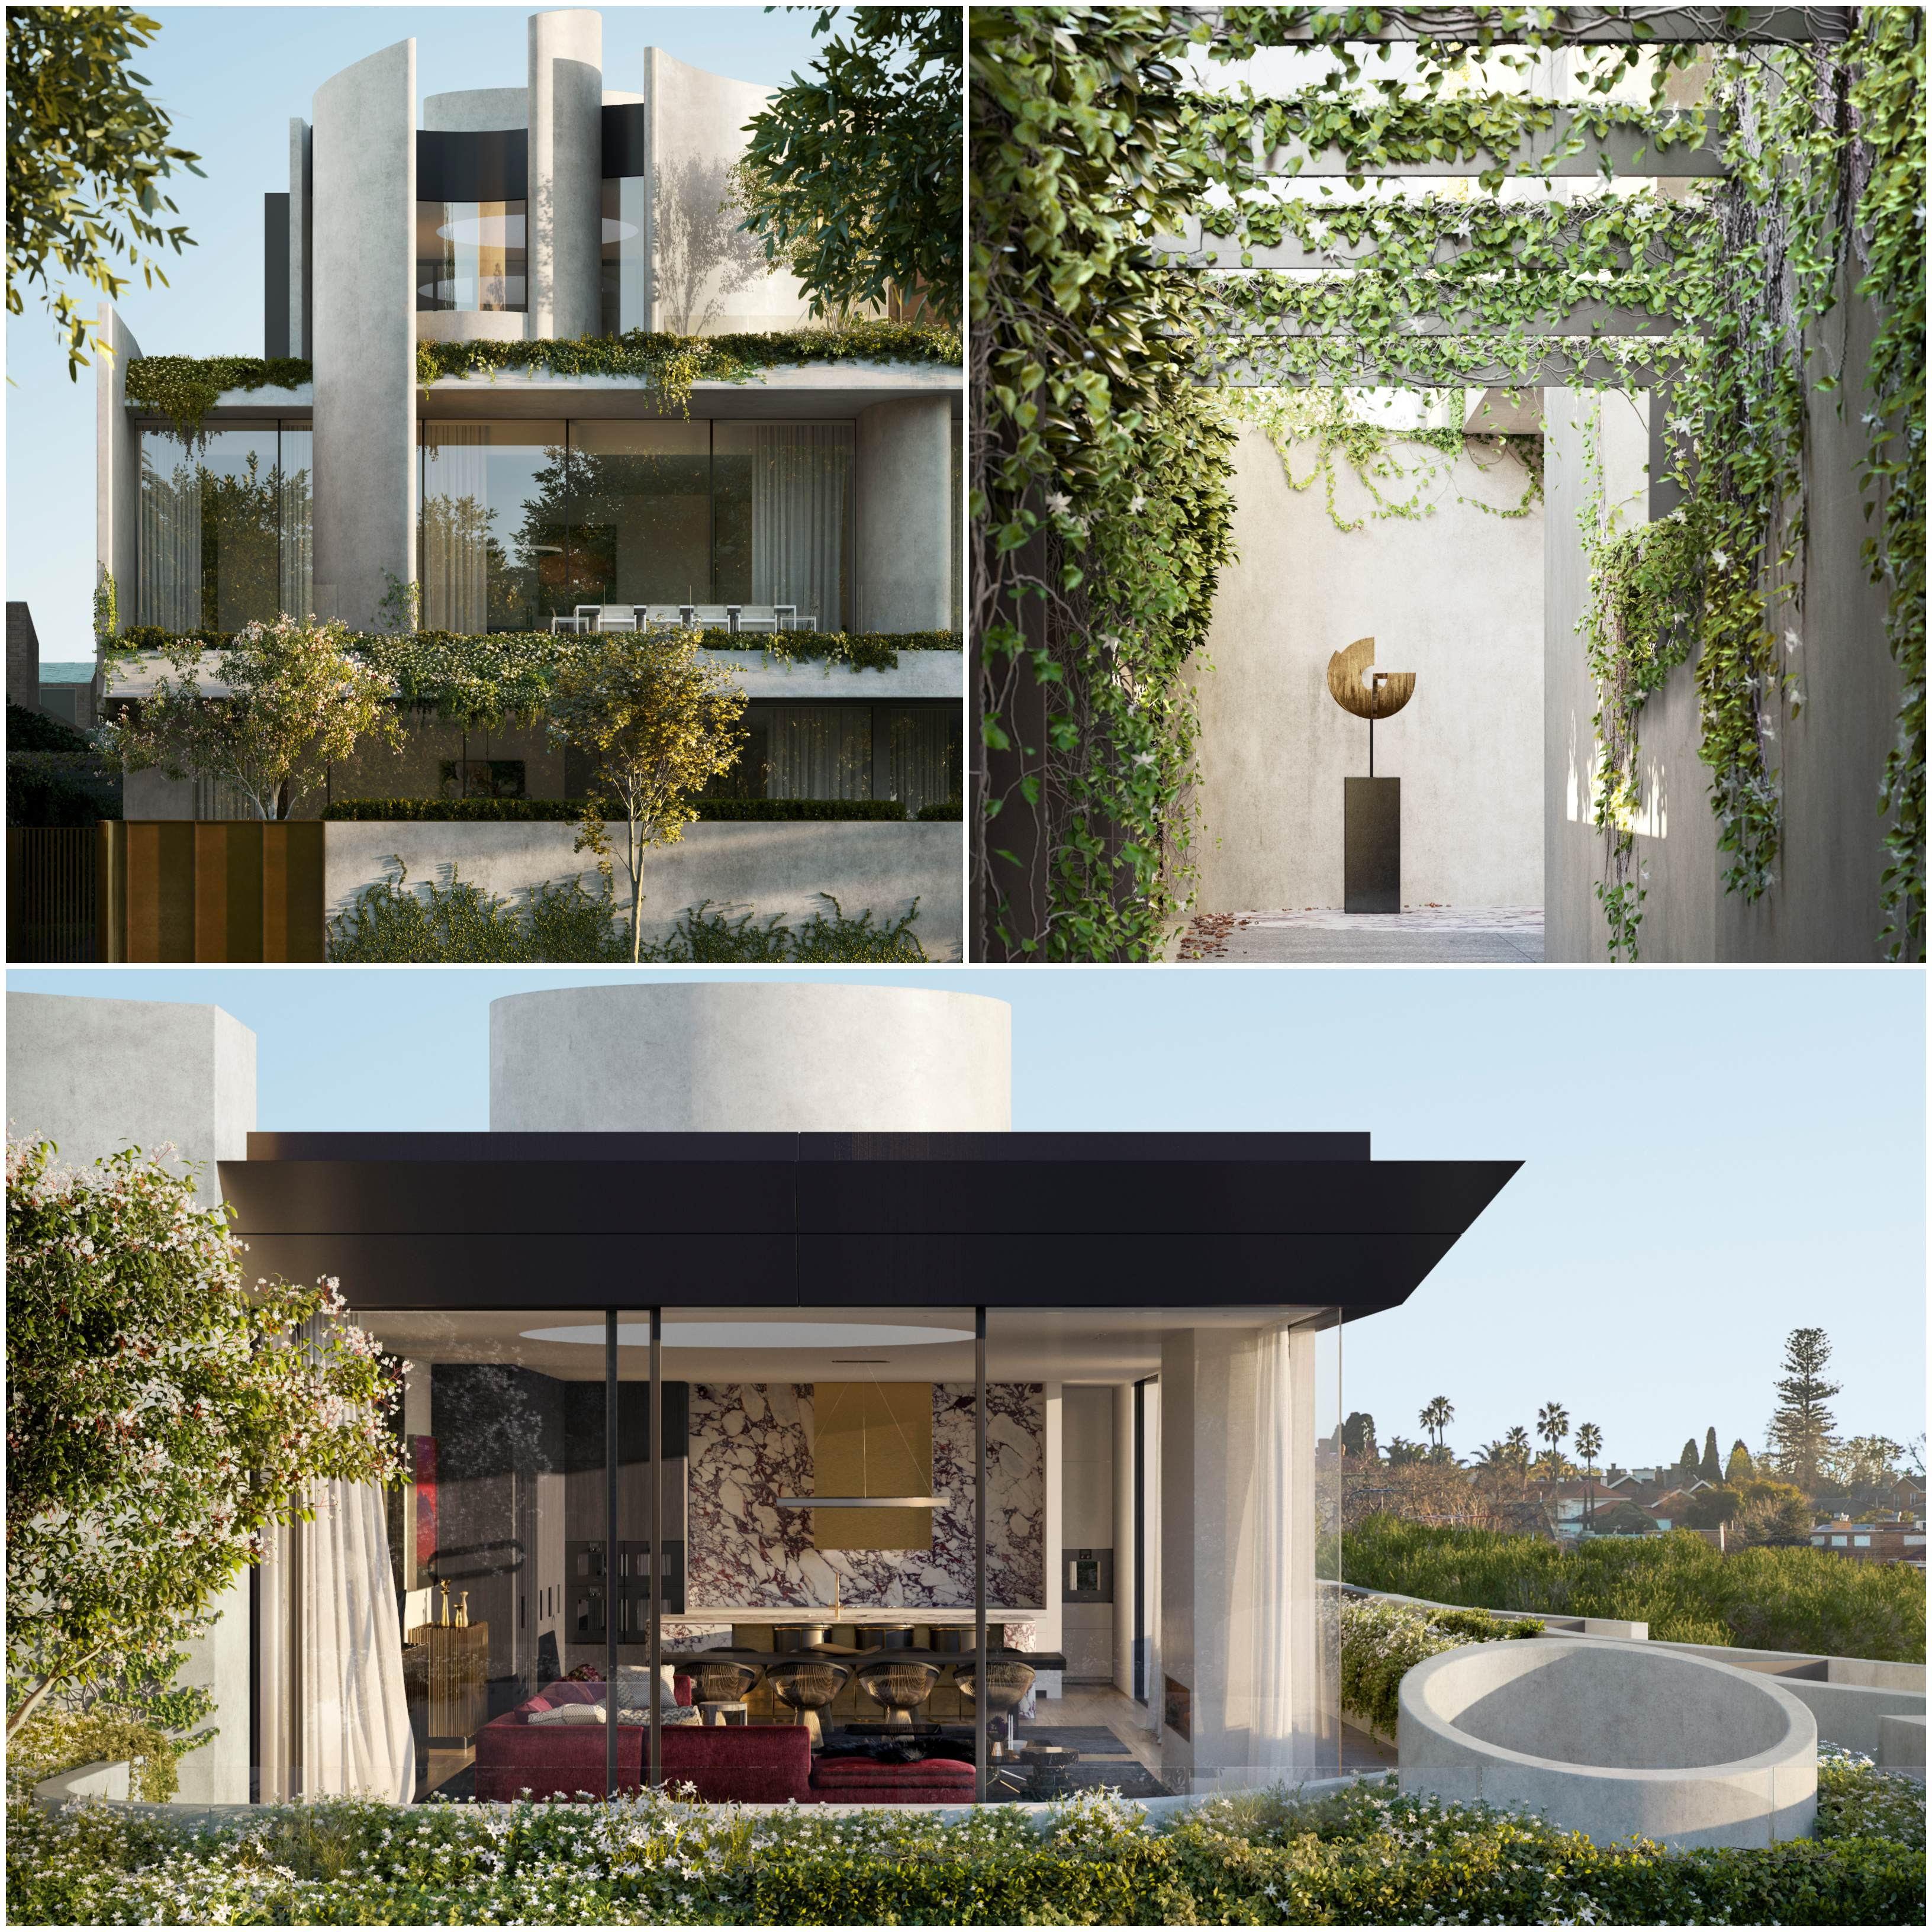 146 Toorak Road West: Beulah's latest South Yarra offering Fawkner House will incorporate a water feature, gardens, long vistas and a three-story entry.